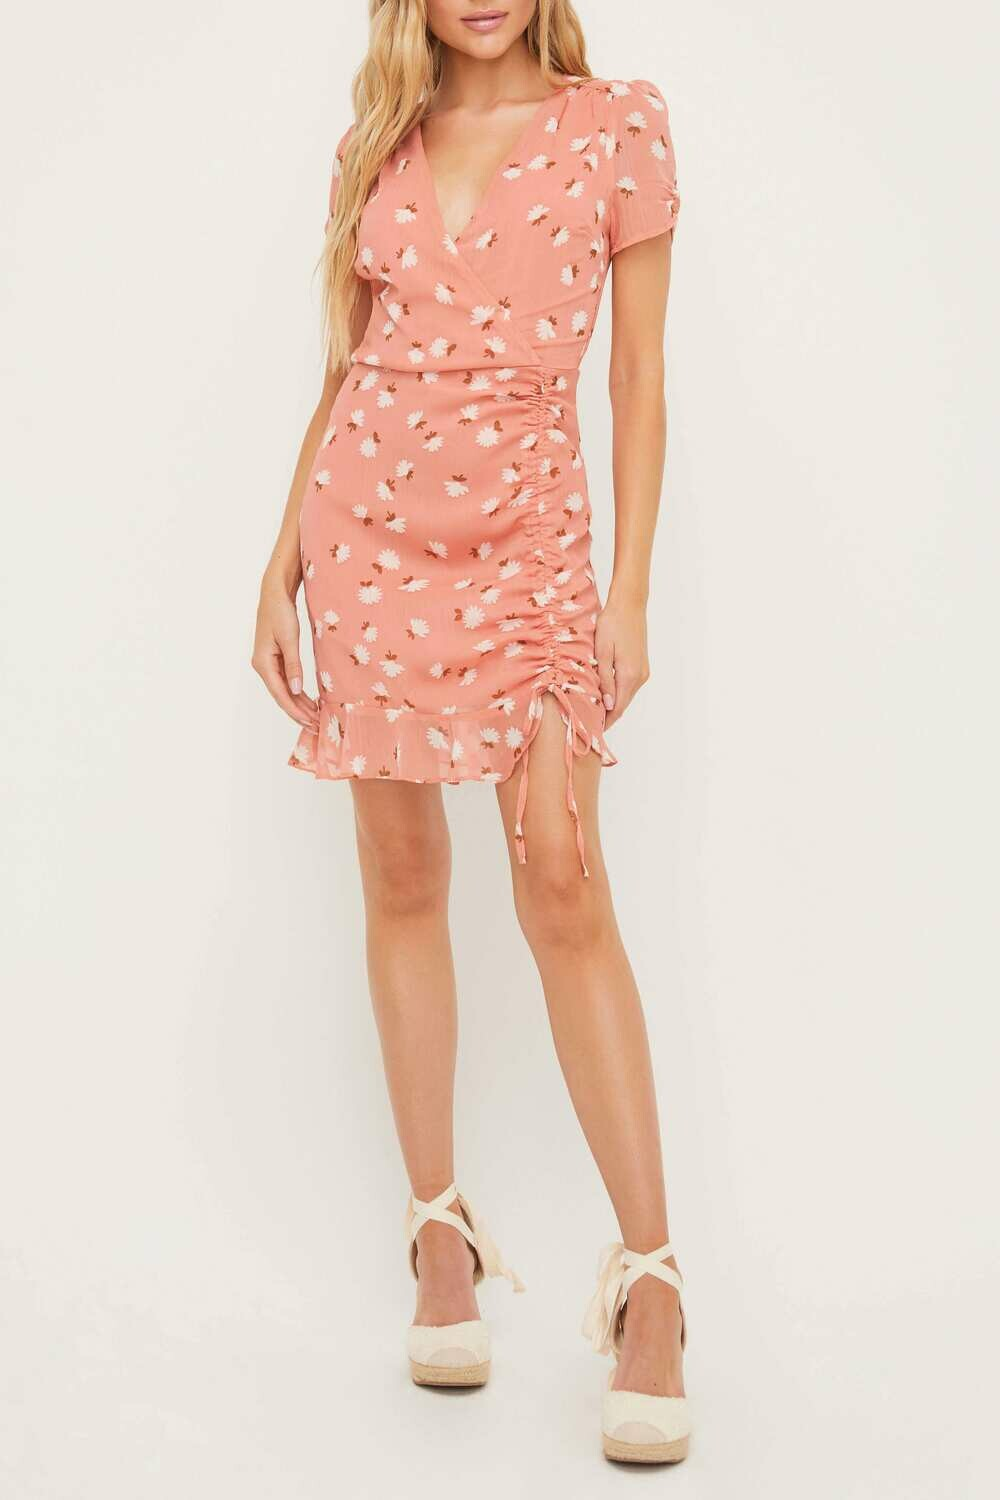 Pink Floral Print Dress with Side Ruching